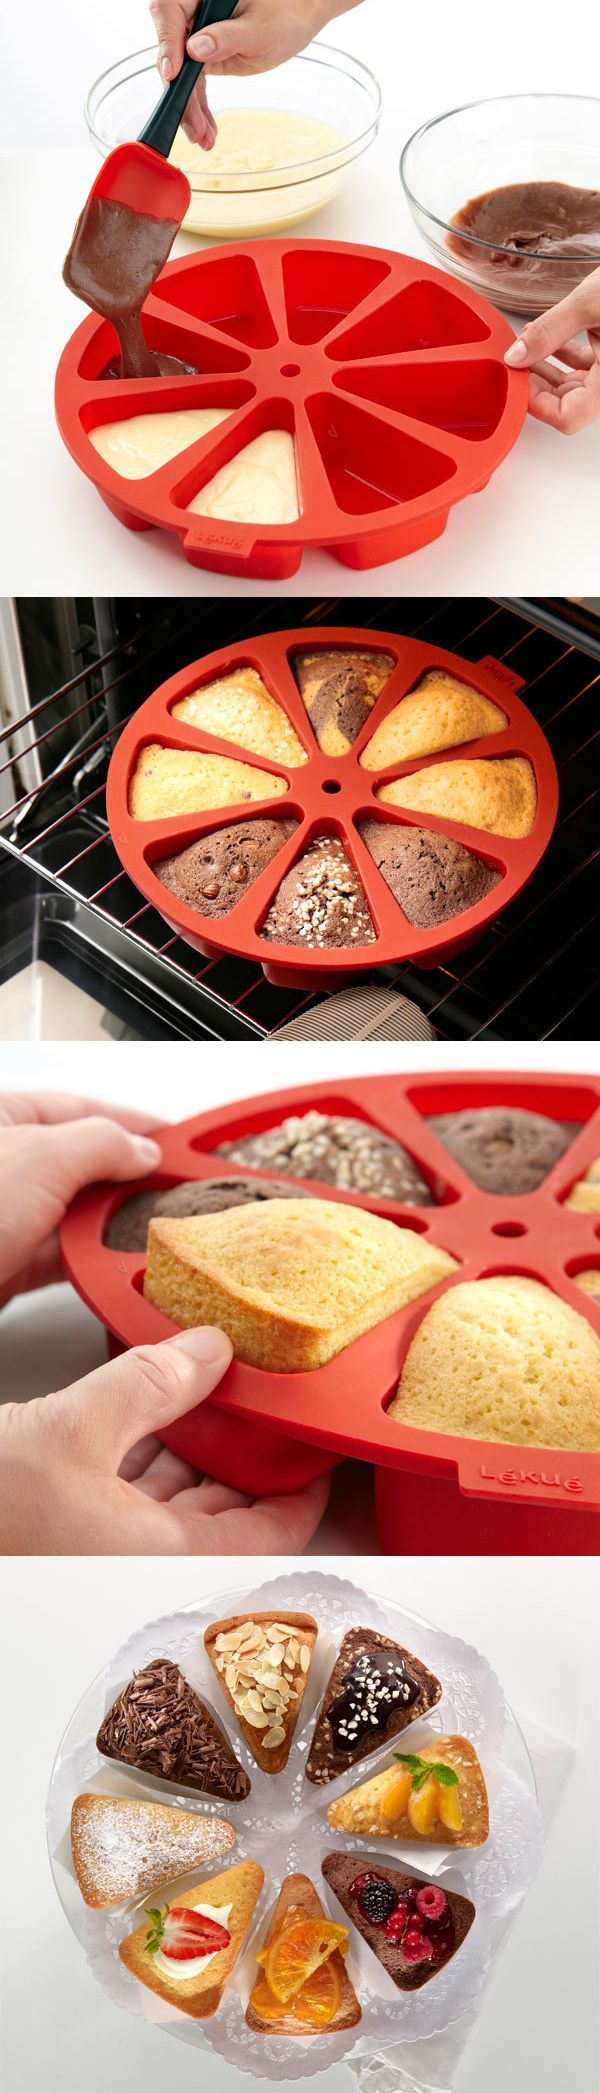 Cake mold for individual slices. Would be good for banana bread!